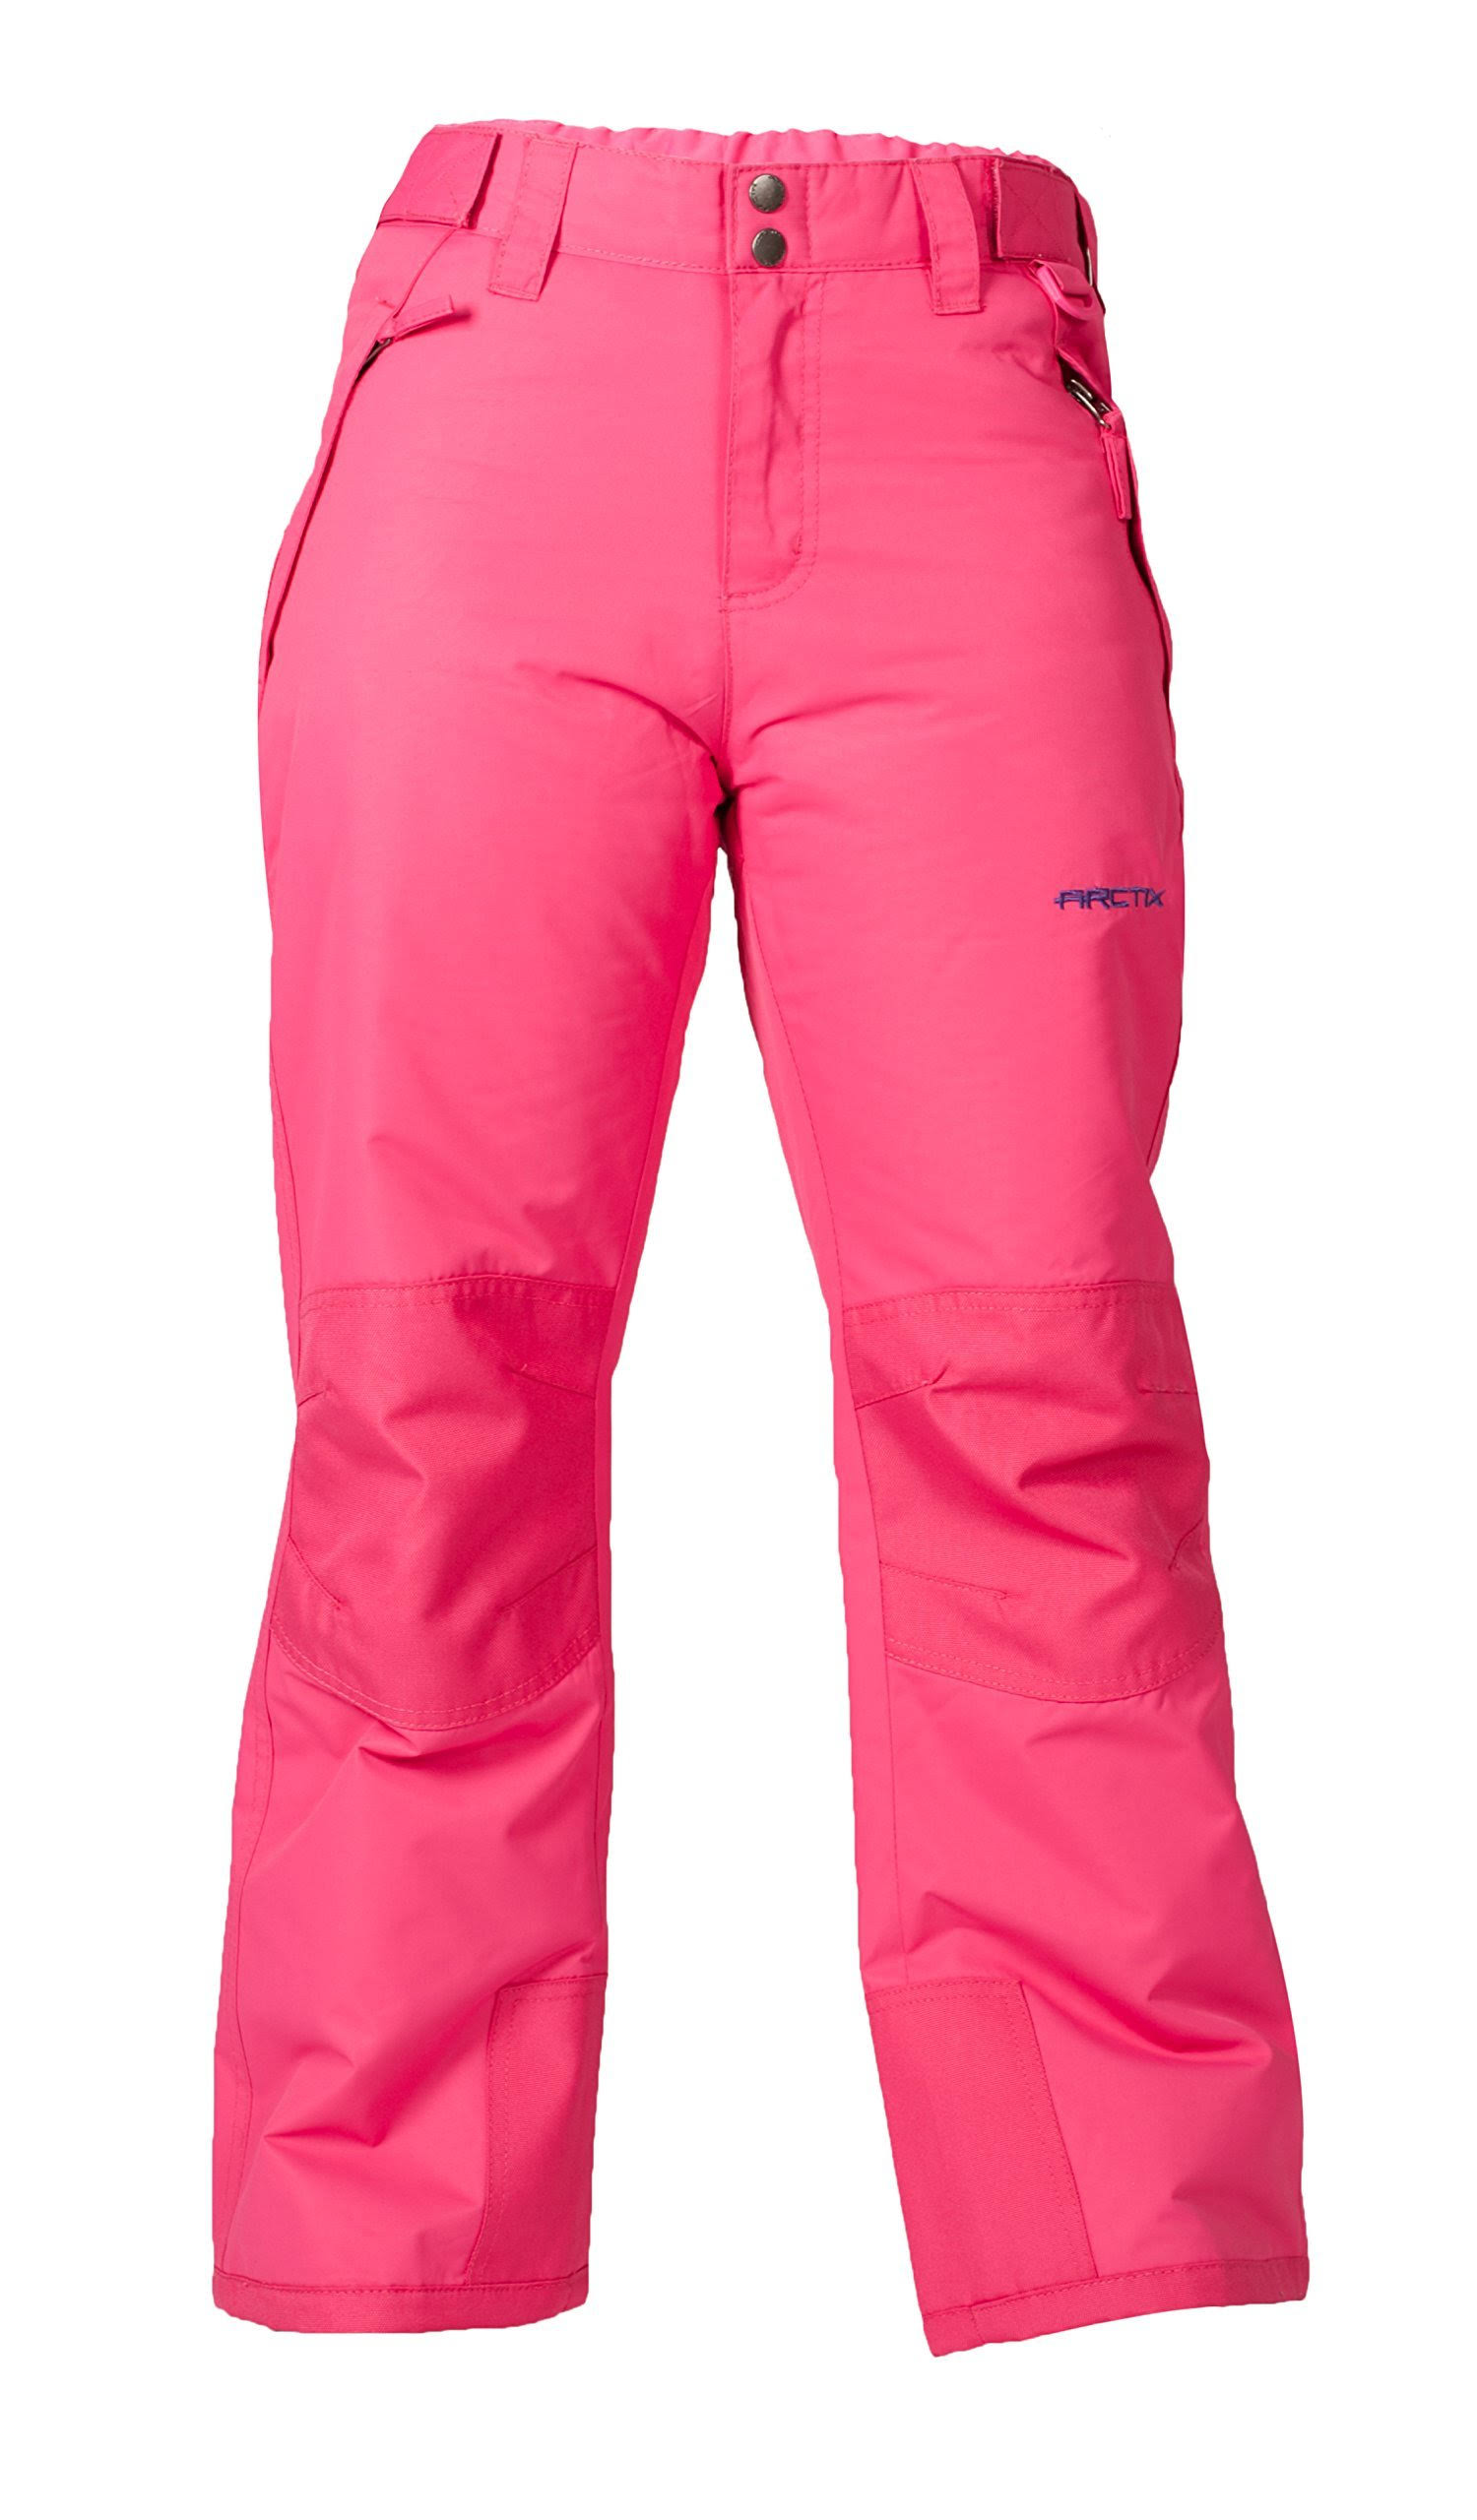 Arctix Youth Snow Pants with Reinforced Knees